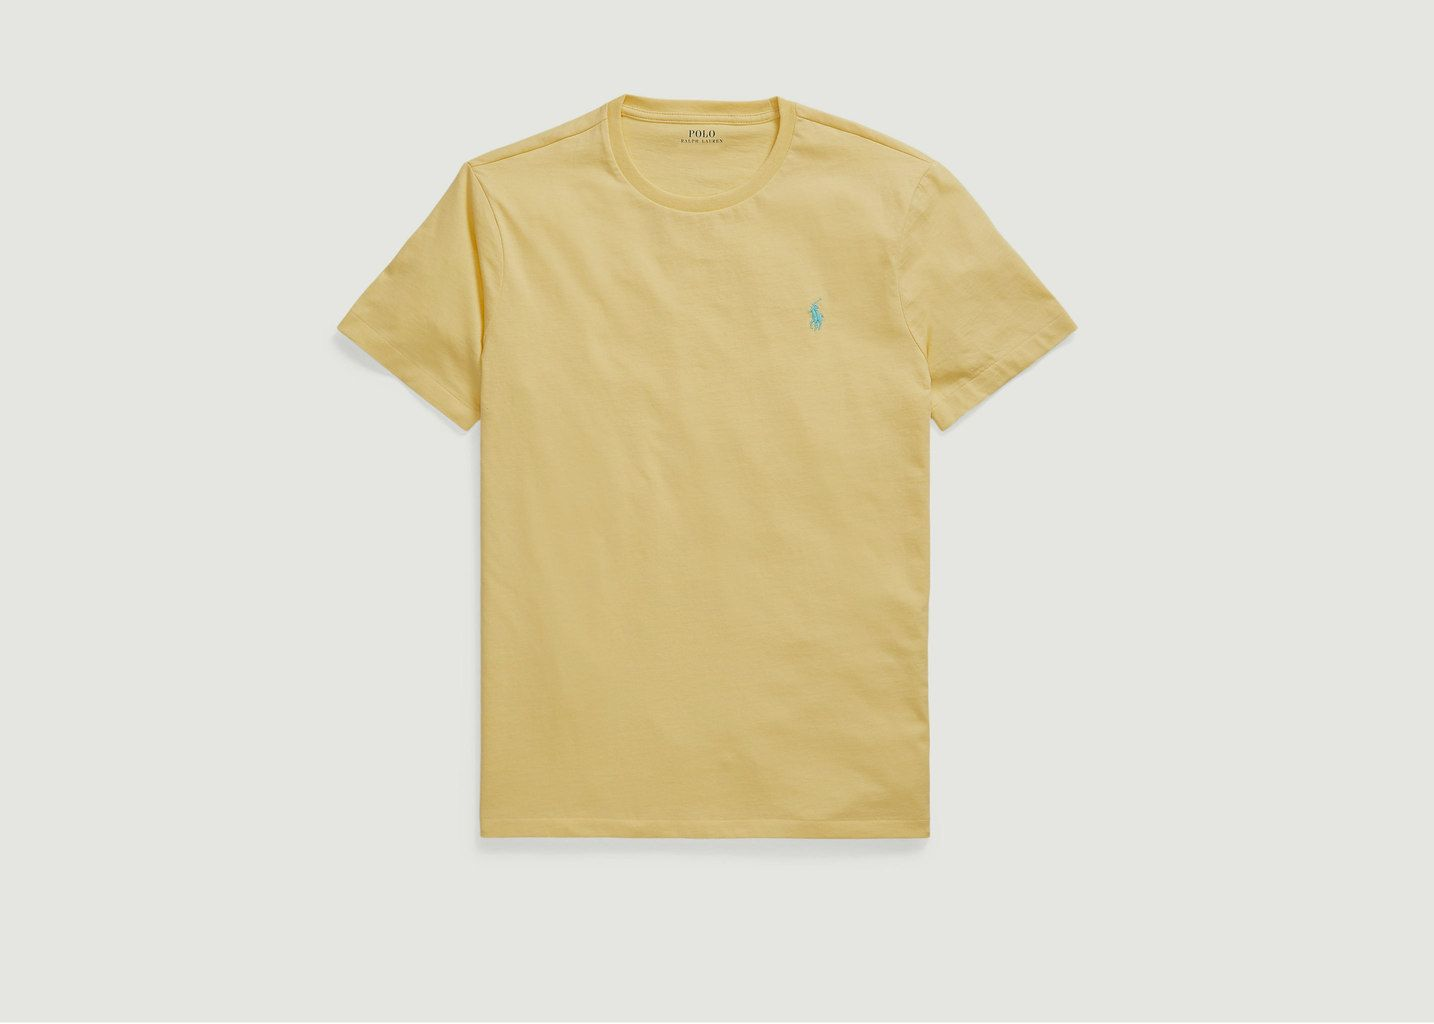 T-Shirt Logo - Polo Ralph Lauren